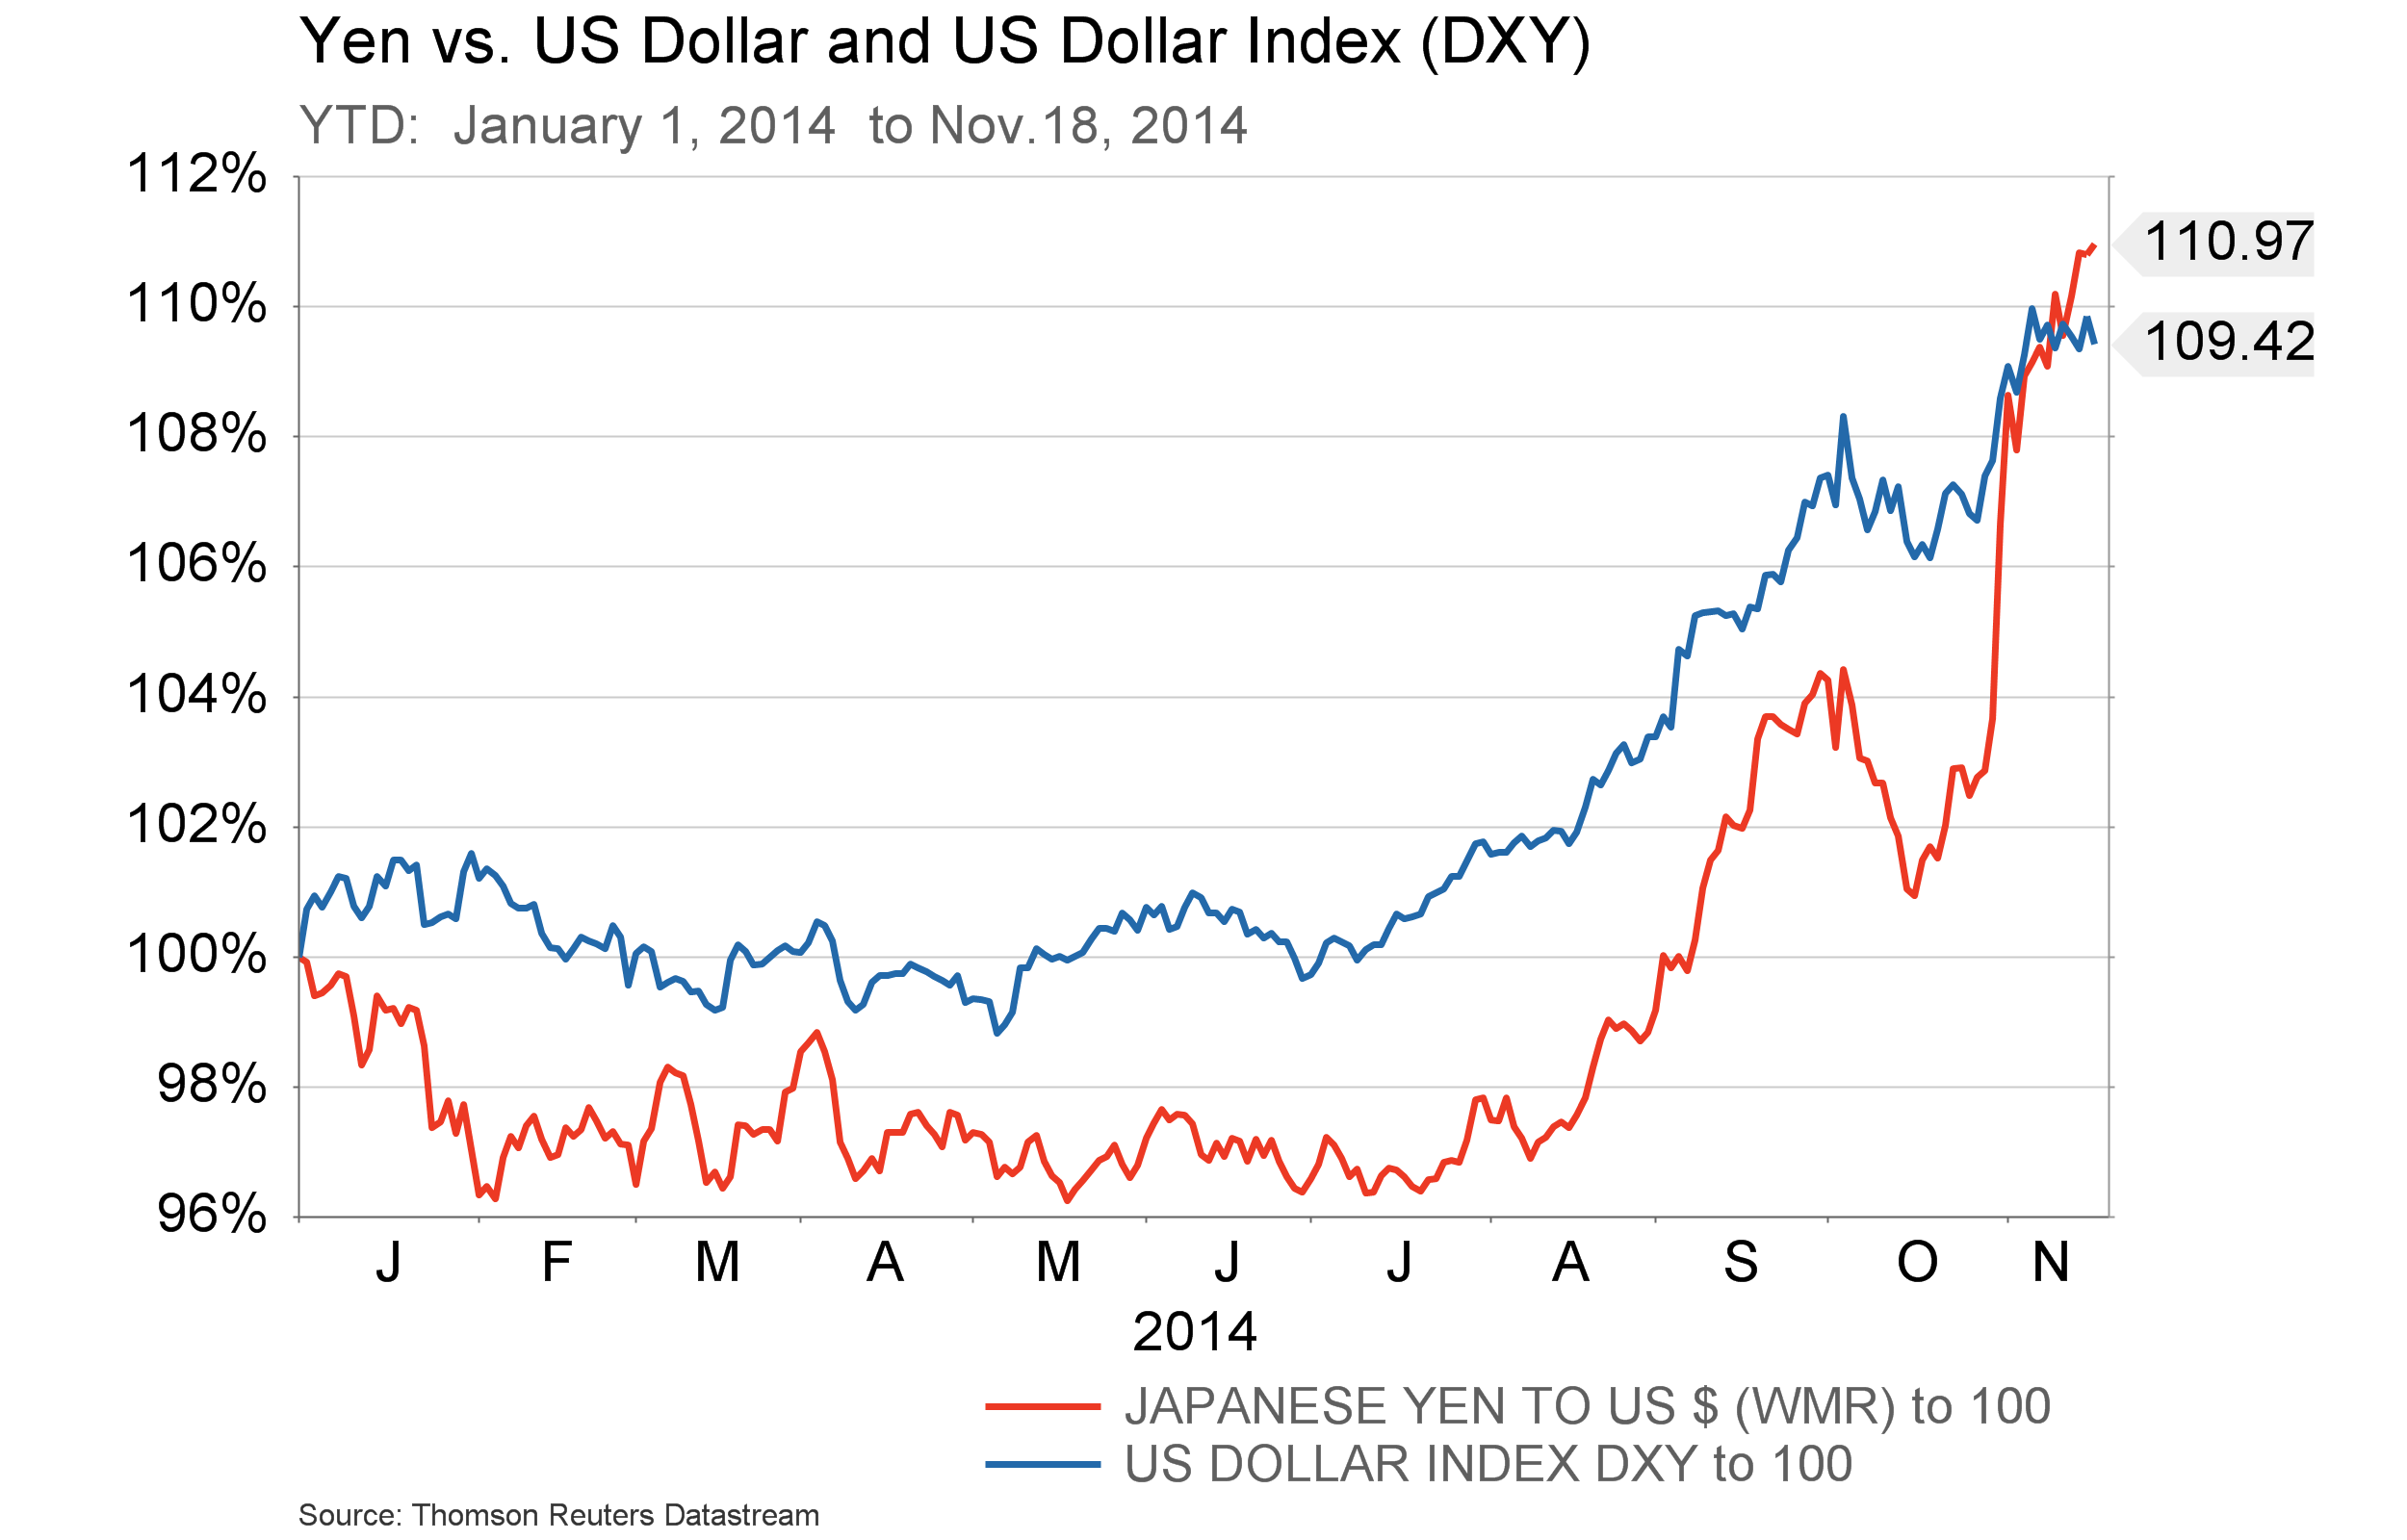 Nov.19 - Yen and DXY